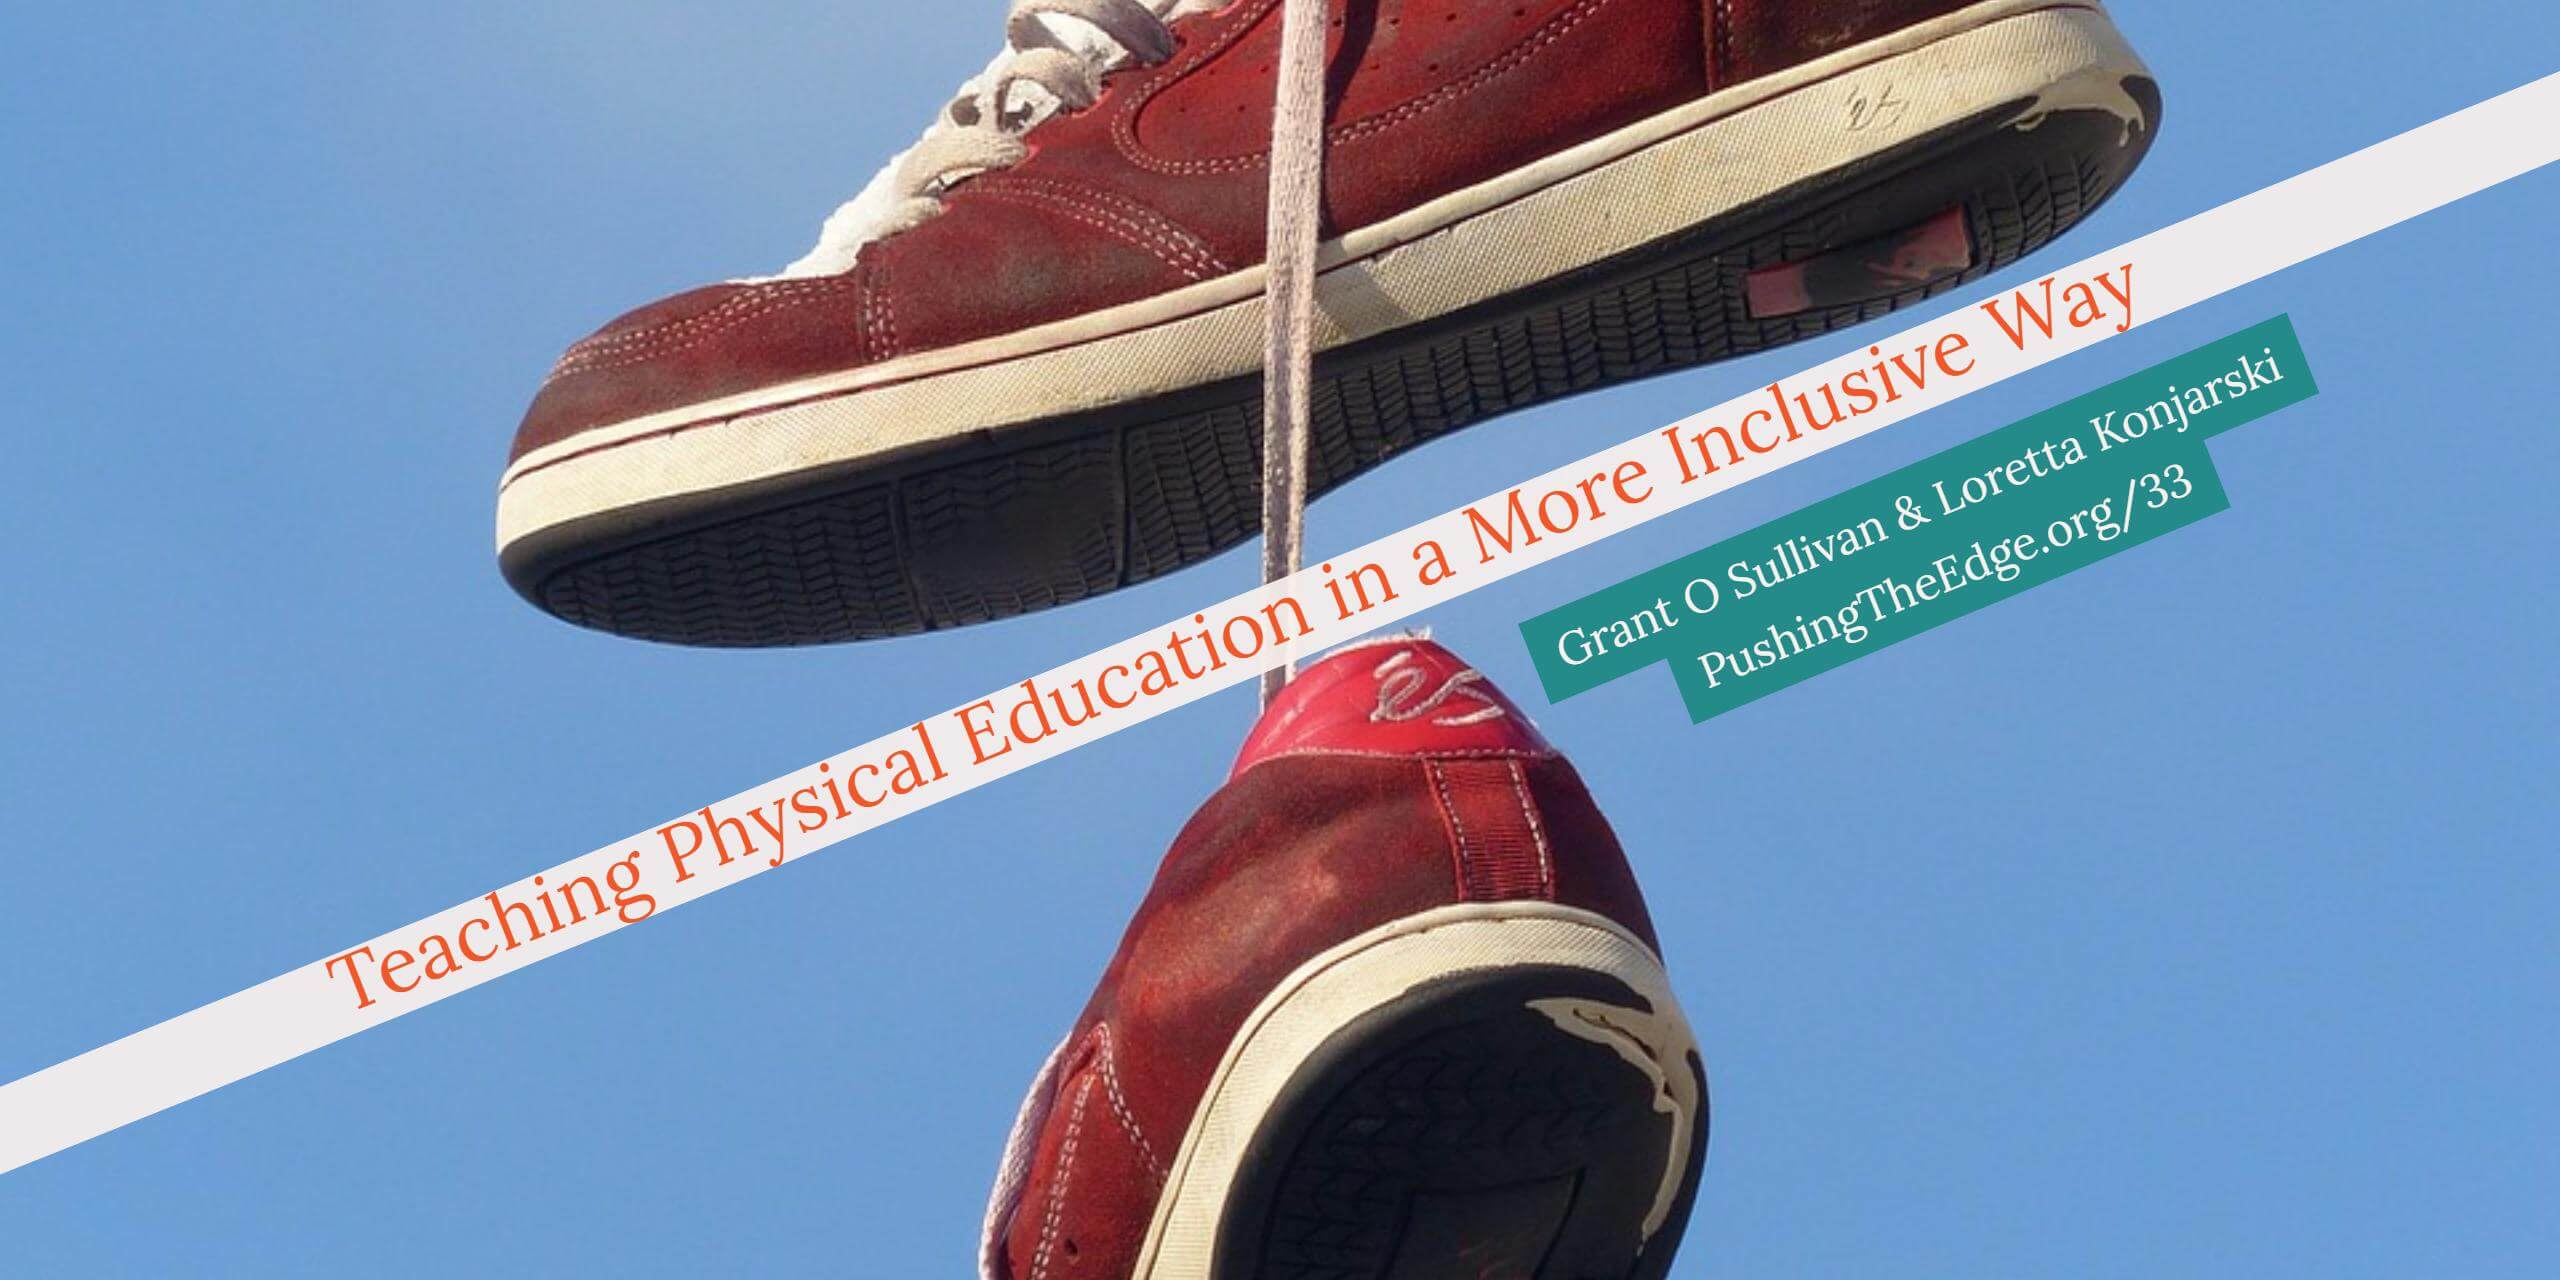 Teaching Physical Education in a More Inclusive Way - with Grant O Sullivan and Loretta Konjarski